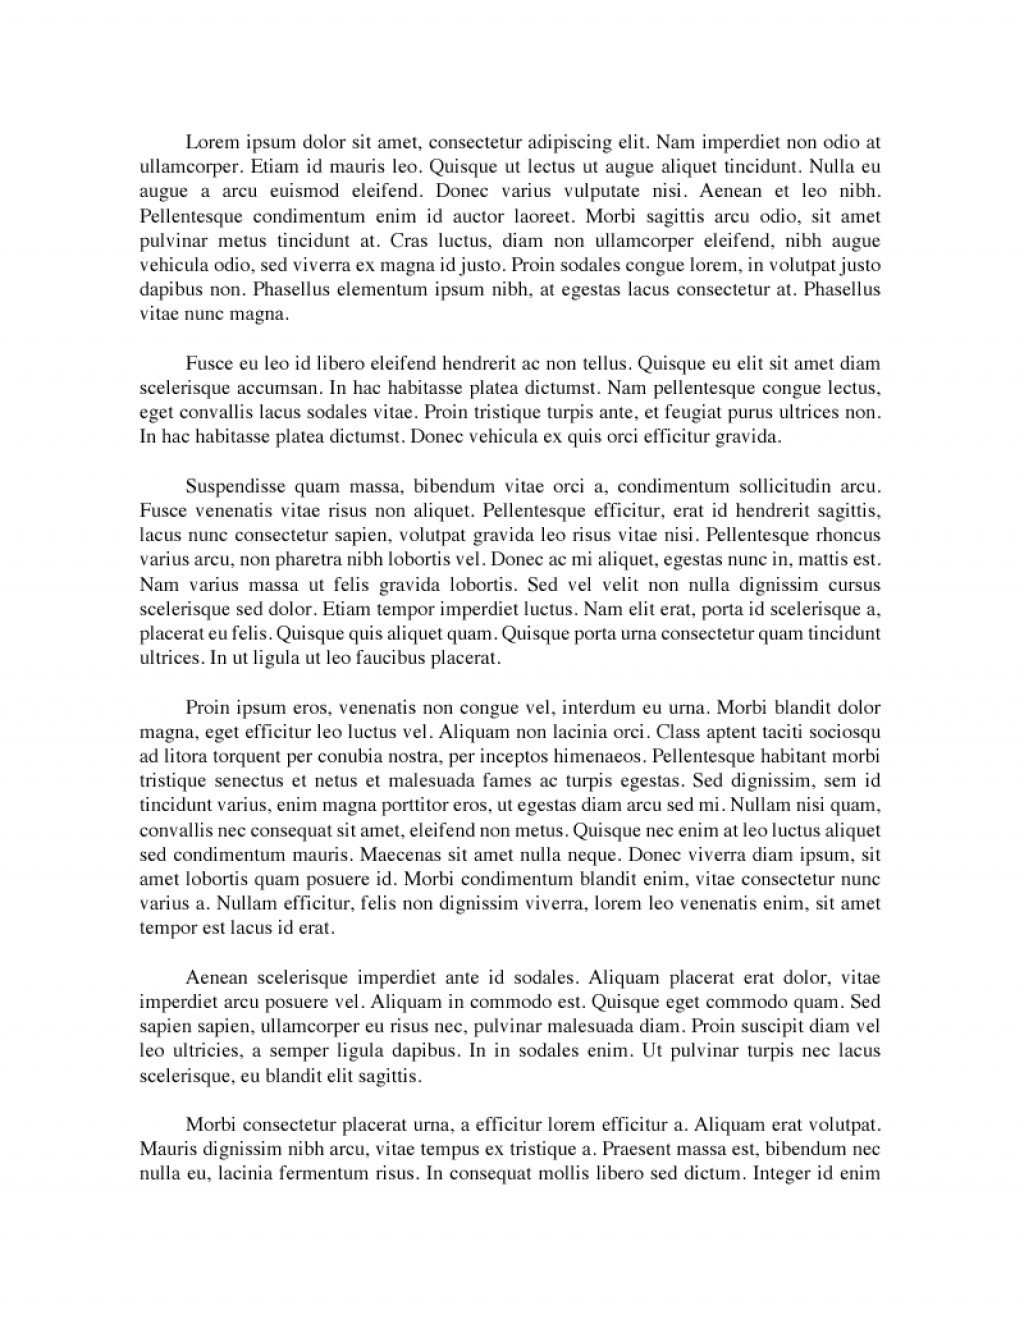 012 Essay Example Free Essays For School Striking Students Scholarships High Writing Prompts Large